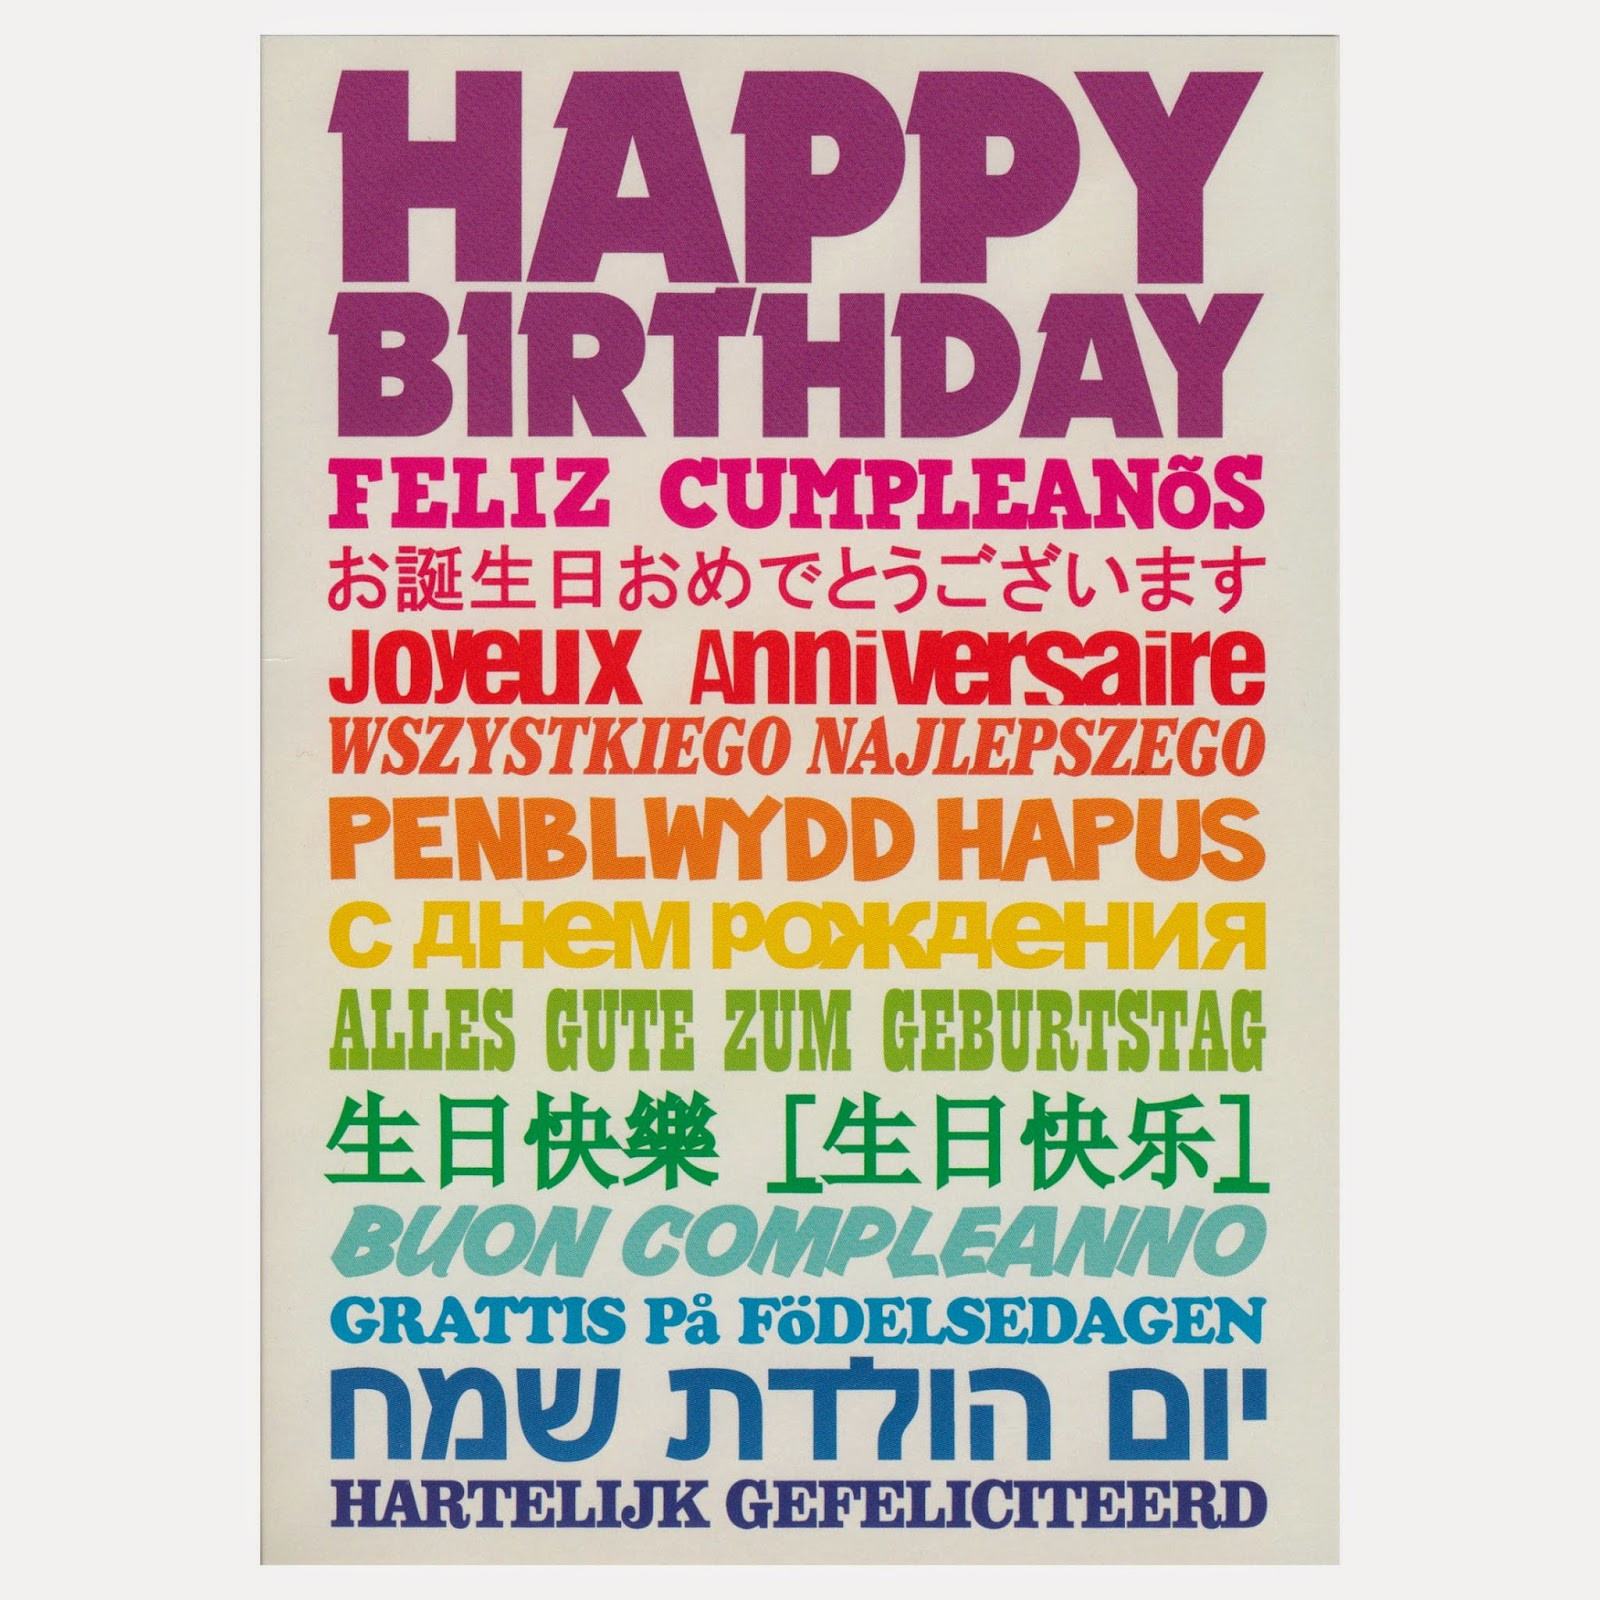 Best ideas about Rude Birthday Wishes . Save or Pin Birthday Wishes Rude Birthday Wishes Now.